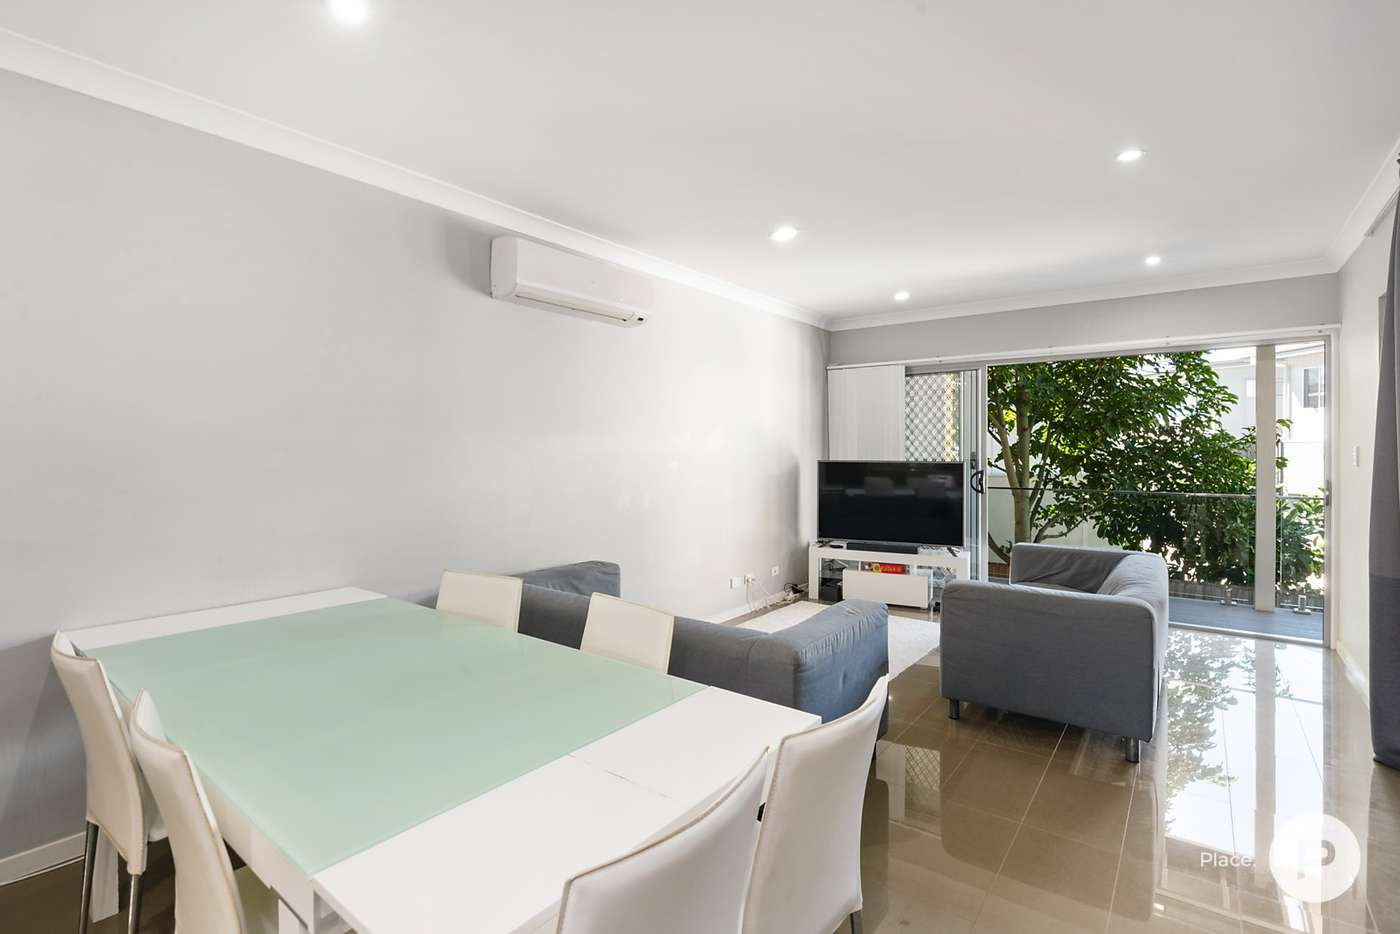 Fifth view of Homely townhouse listing, 62/18 Whitley Street, Mount Gravatt East QLD 4122